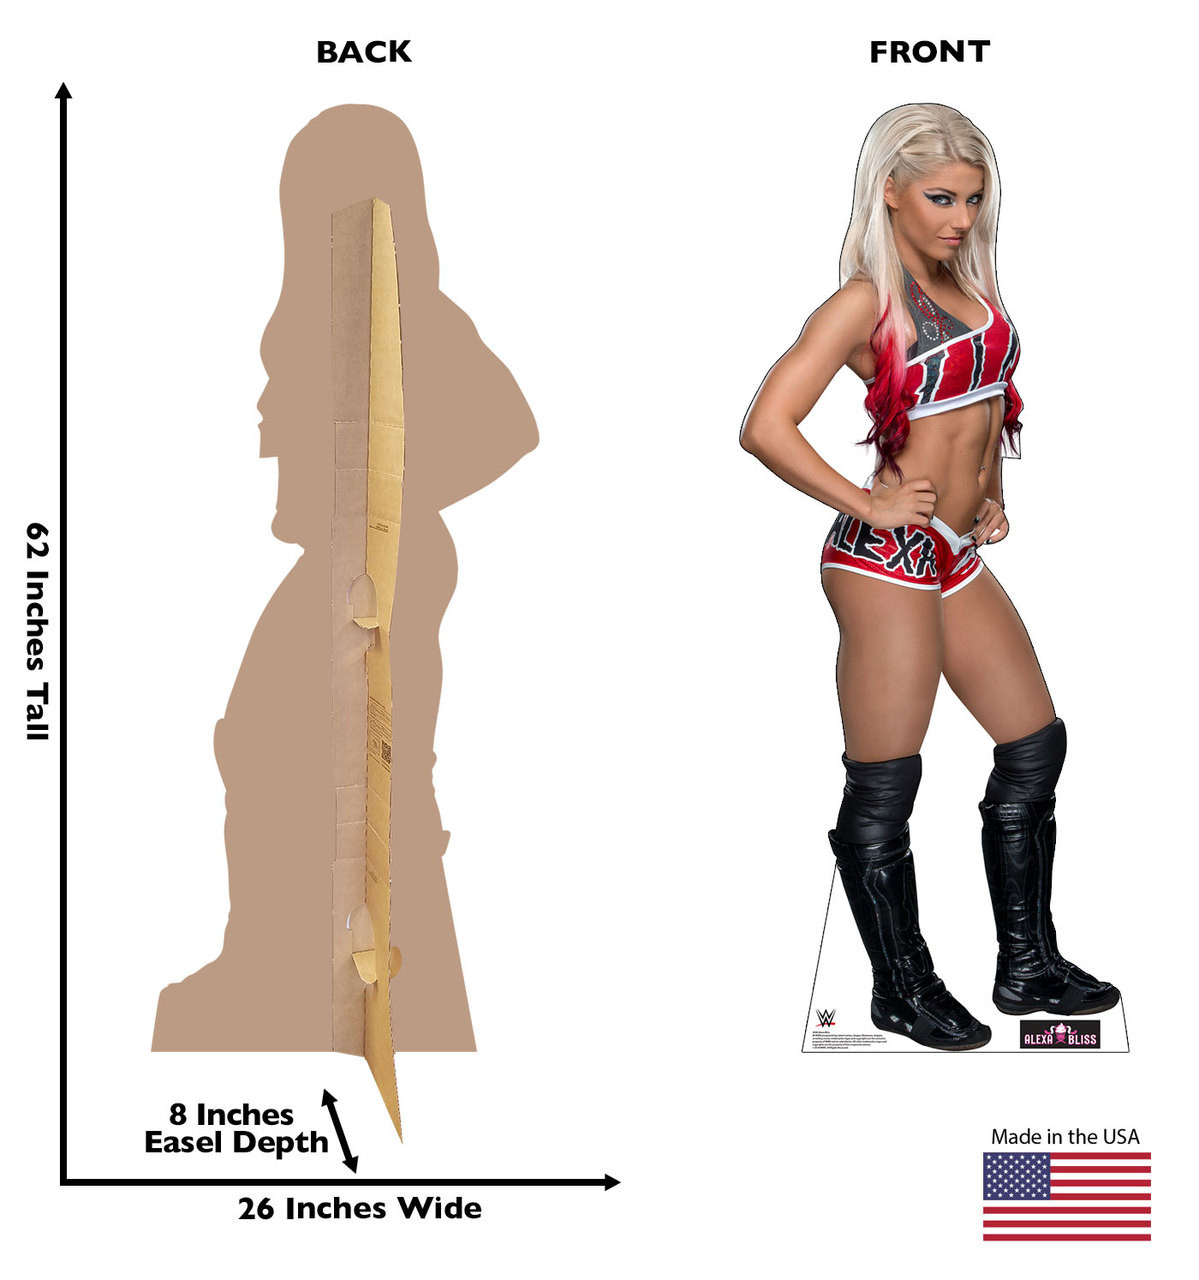 Alexa Bliss Cardboard Cutout Life-size cardboard standee front and back with dimensions